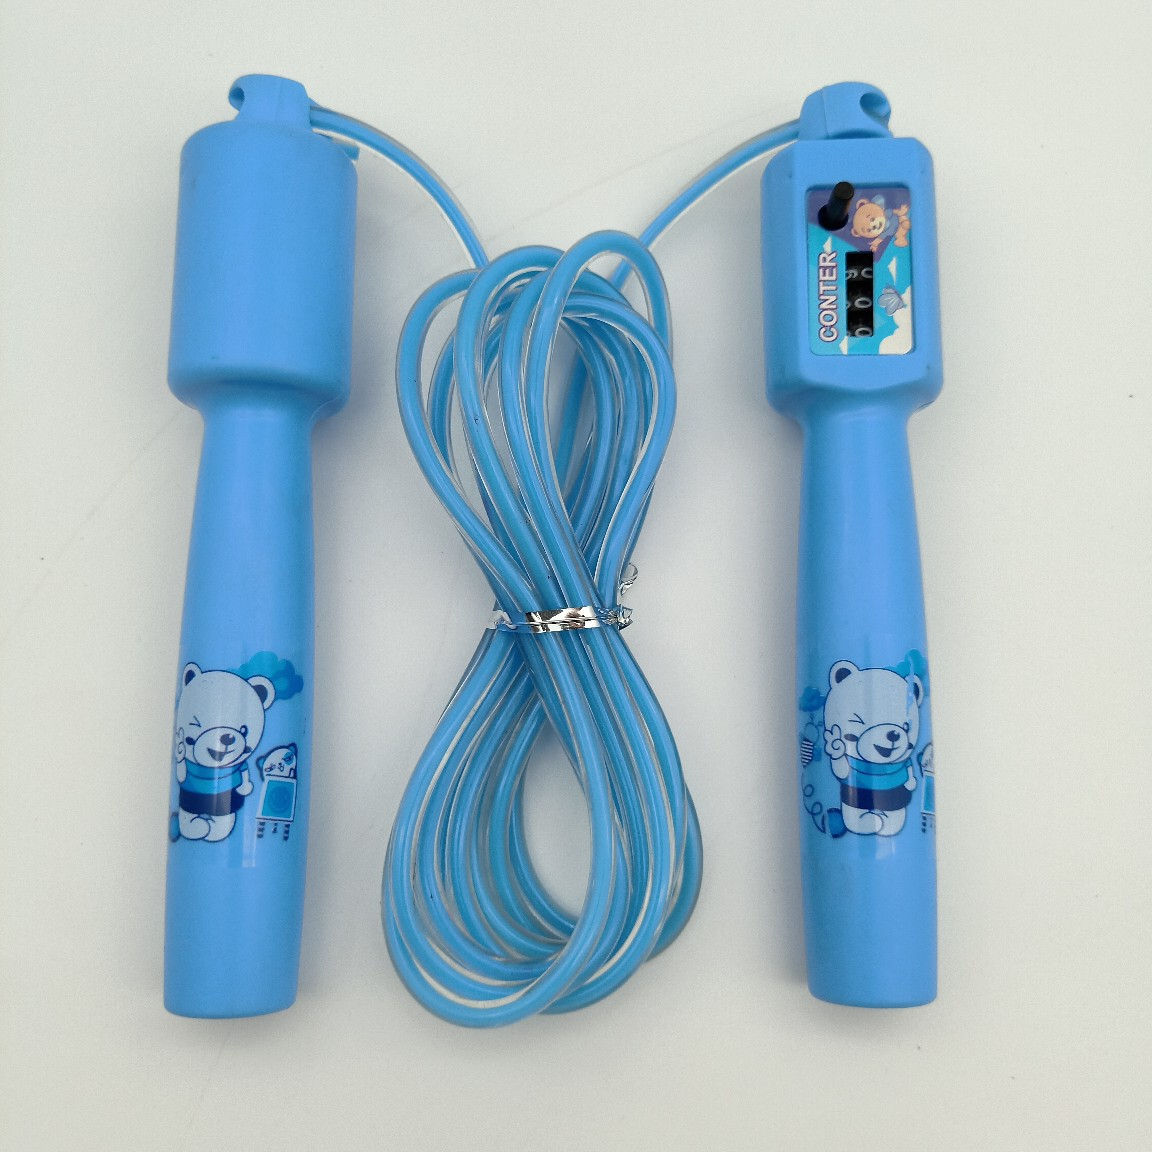 Liang Jian Manufacturers Direct Selling Sports Activity Jump Rope Cartoon Plastic Count Handle Bag Children Sports PVC Rope